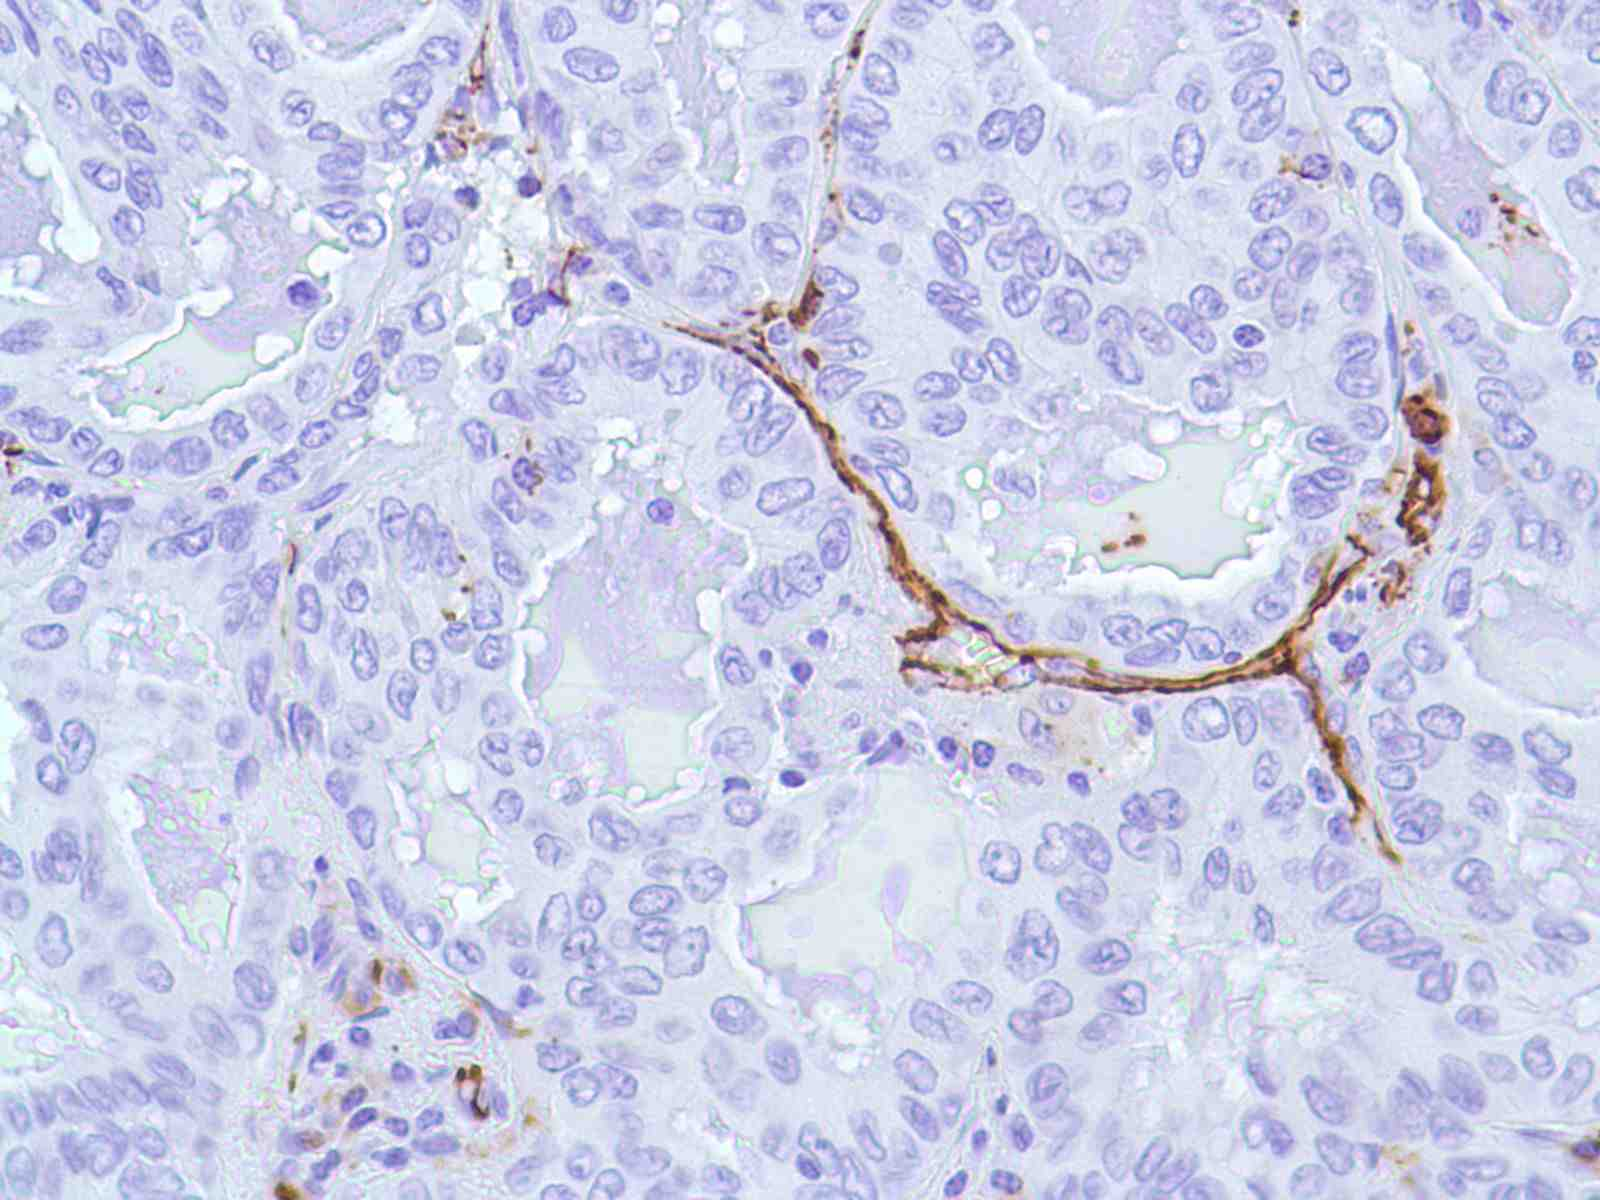 Human Lung Adenocarcinoma stained with anti-CD31 antibody